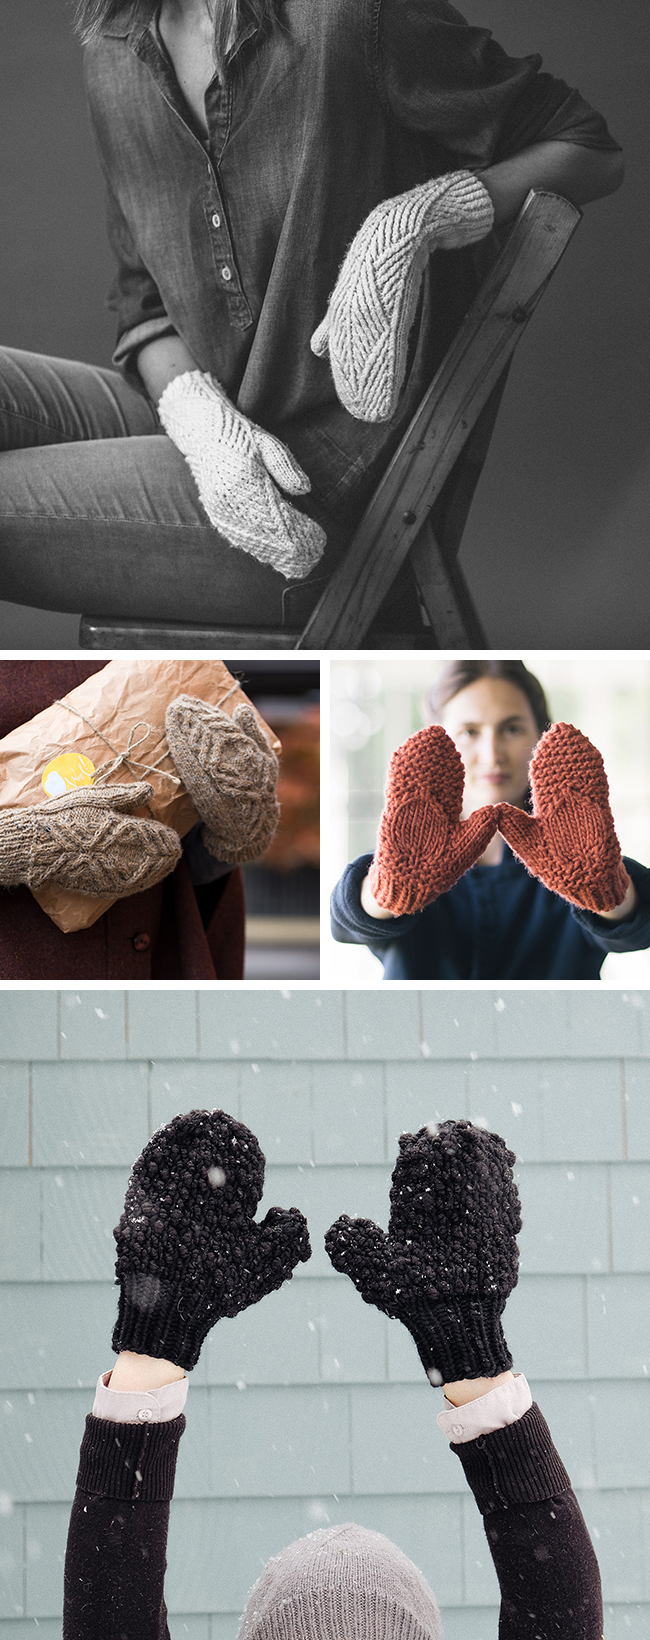 New Favorites: Mitten mania (cont.)